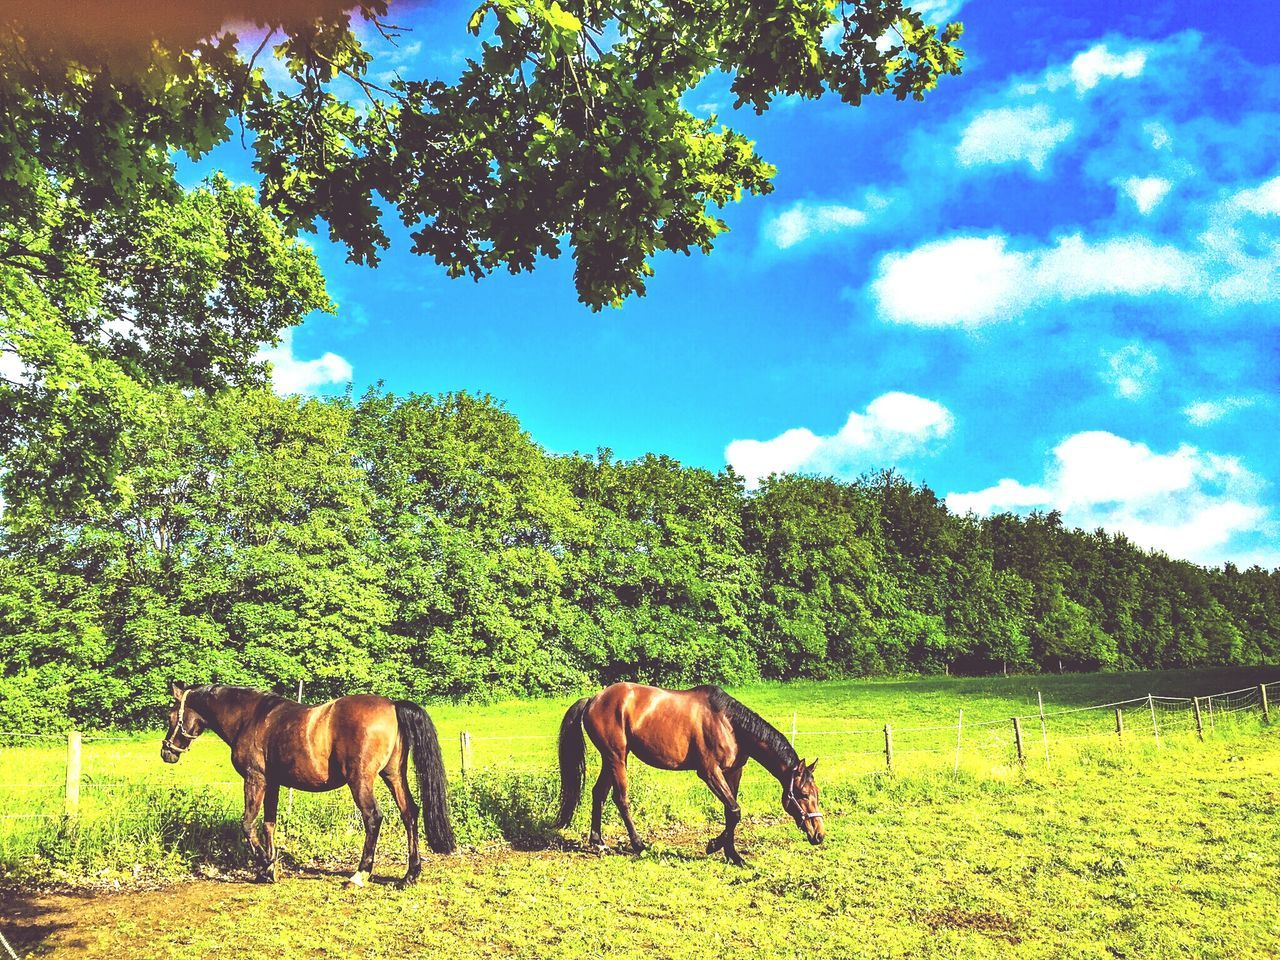 tree, horse, mammal, field, animal themes, nature, domestic animals, sky, tranquility, day, green color, grazing, grass, landscape, growth, livestock, outdoors, no people, beauty in nature